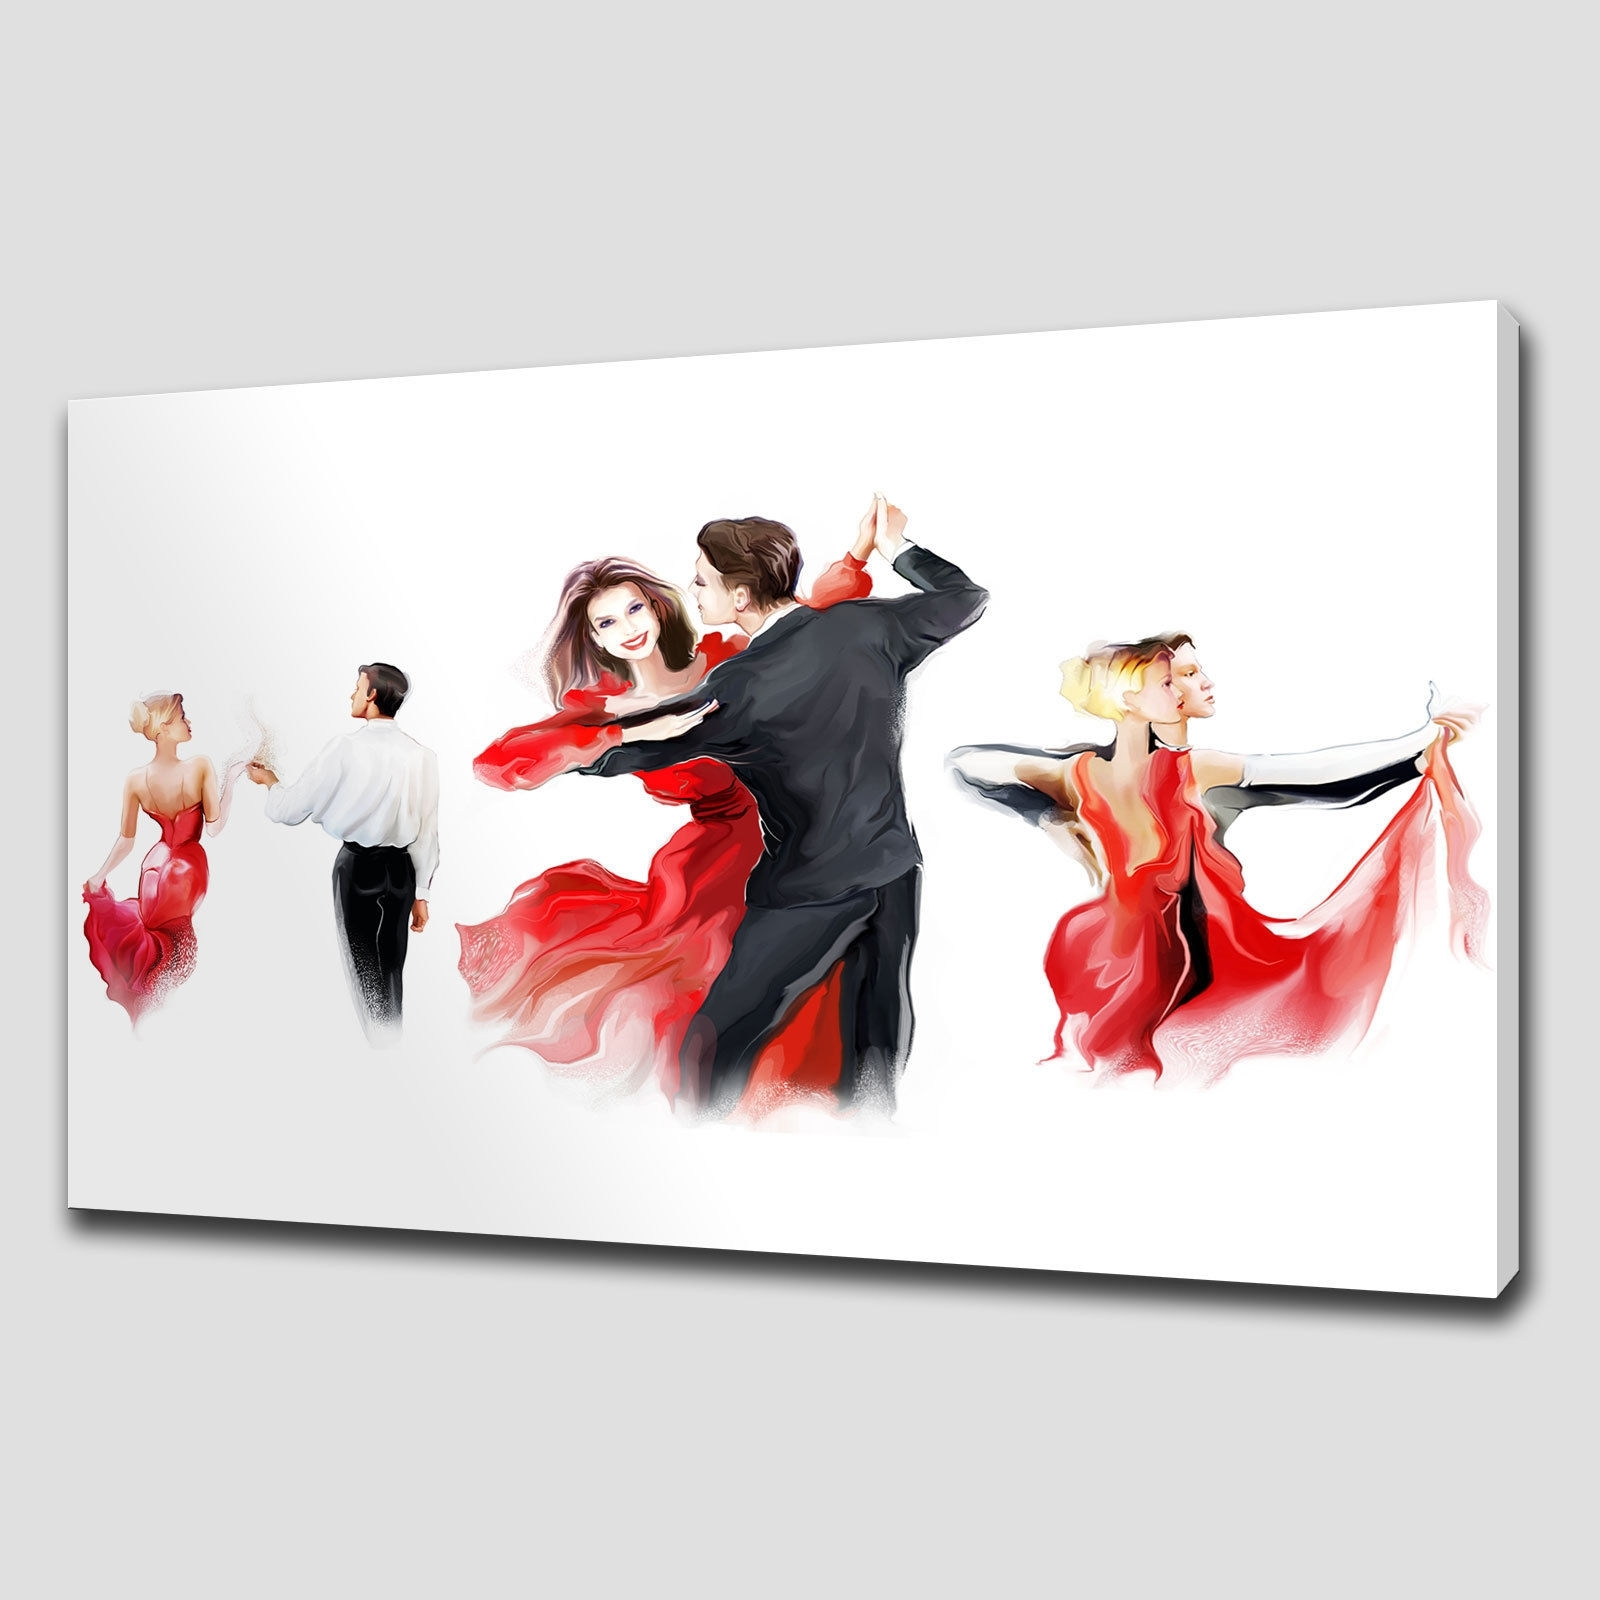 Canvas Print Pictures. High Quality, Handmade, Free Next Day Delivery. Pertaining To Recent Large Red Canvas Wall Art (Gallery 11 of 15)